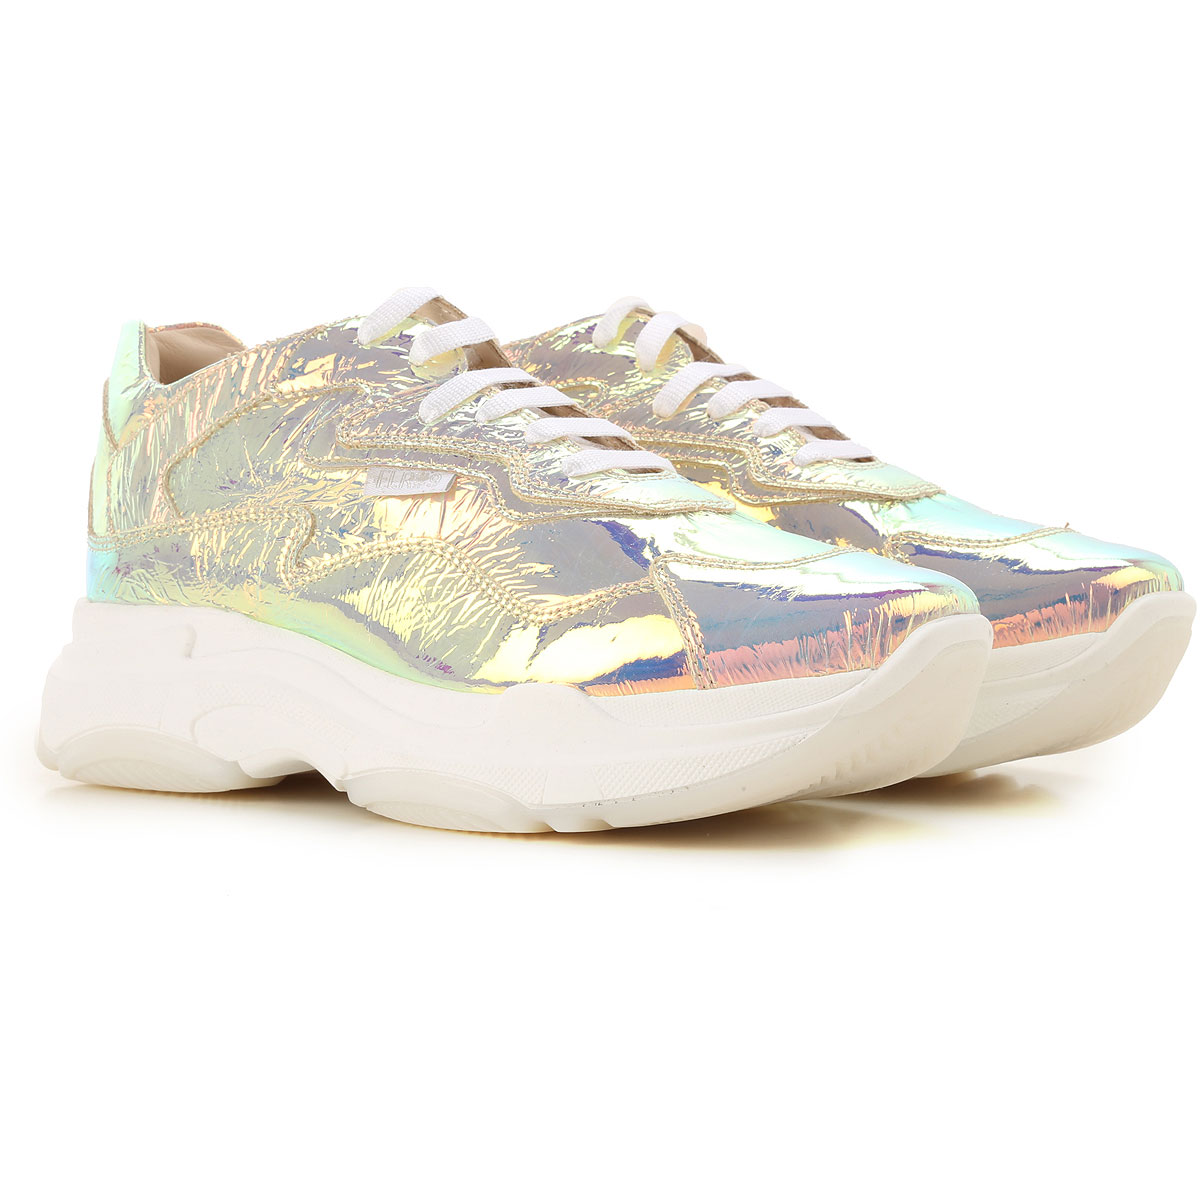 Florens Kids Shoes for Girls On Sale, Gold, Leather, 2019, 31 33 37